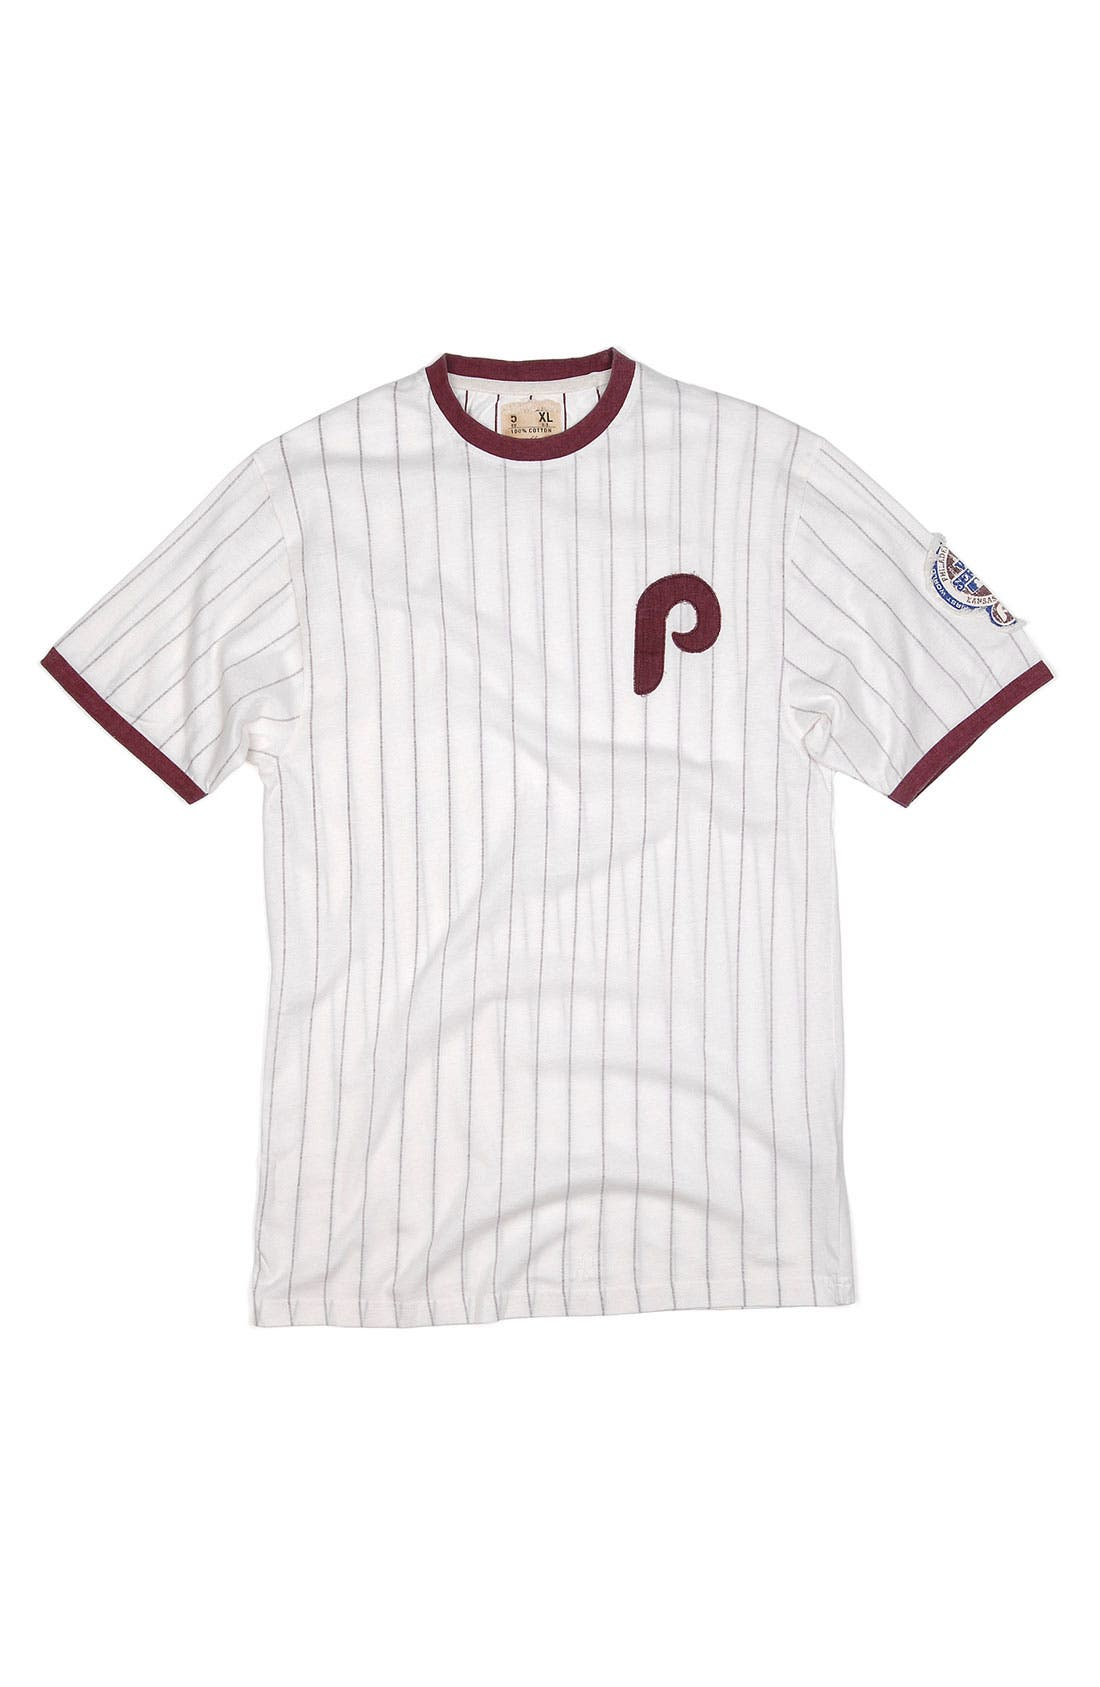 Alternate Image 1 Selected - Red Jacket 'Philadelphia Phillies' Trim Fit Ringer T-Shirt (Men)